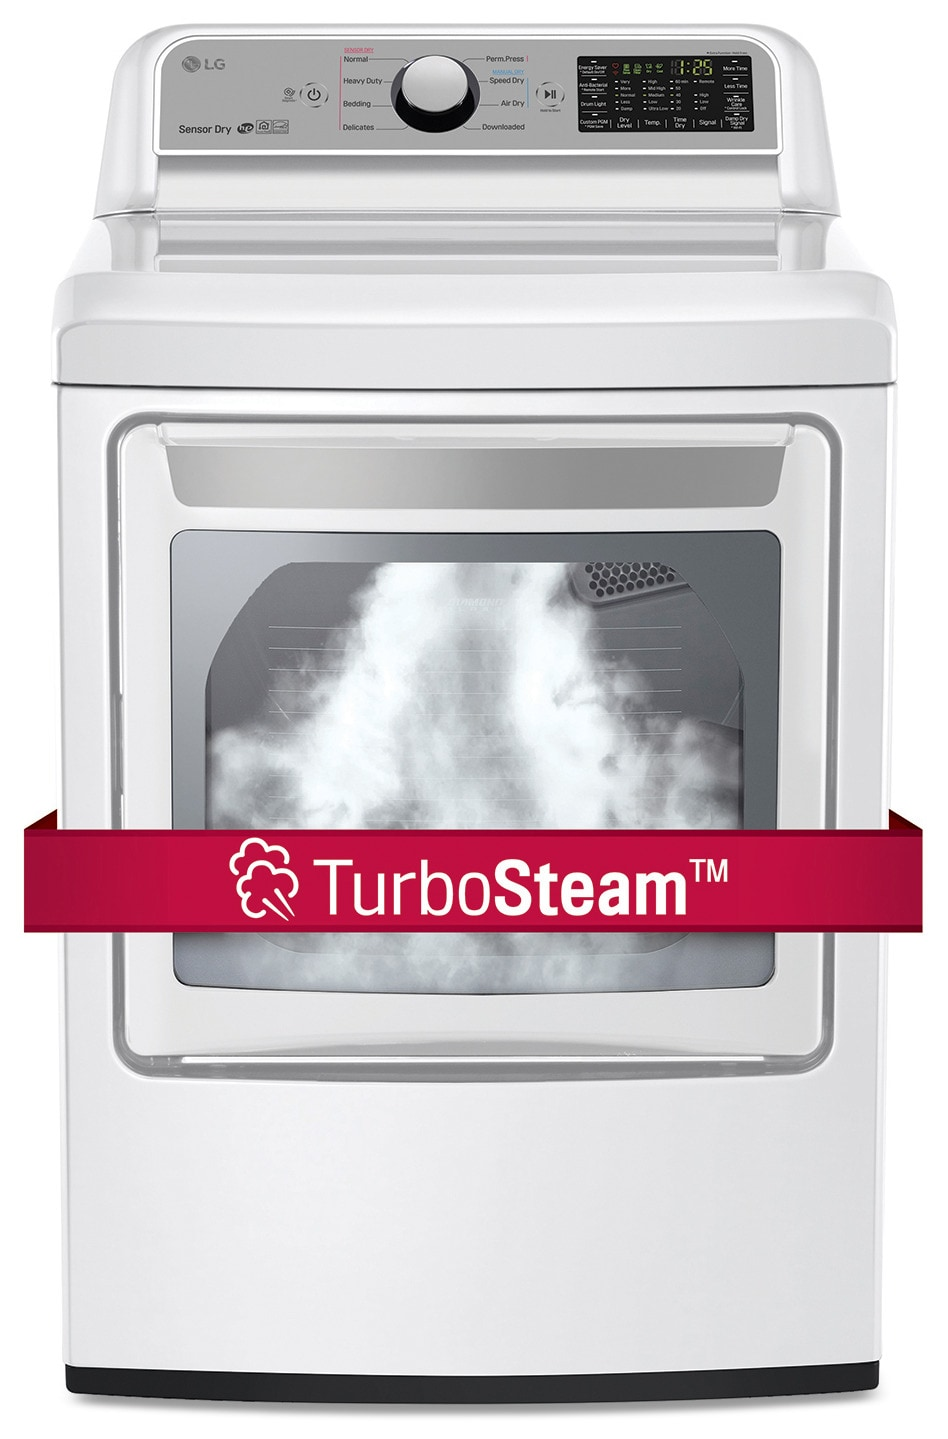 LG Appliances White TurboSteam Electric Dryer (7.3 Cu. Ft.) - DLEX7200W